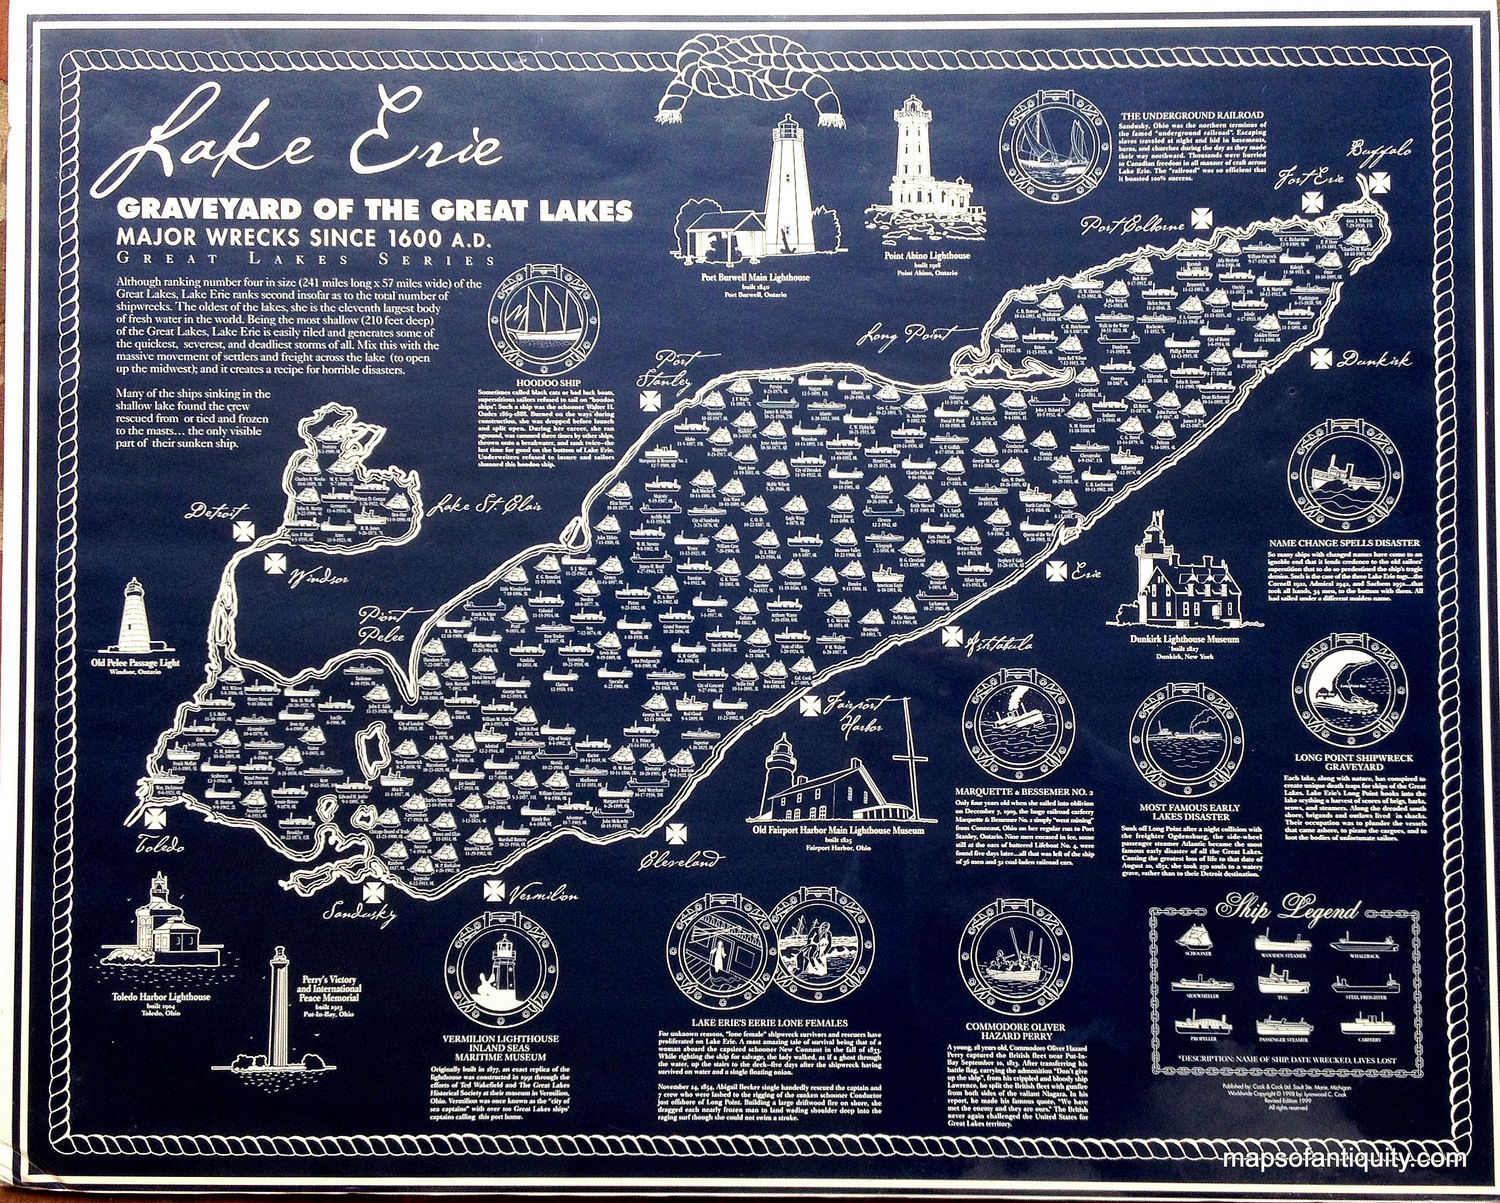 Lake Erie, Graveyard of the Great Lakes, Major Wrecks Since ... on map of the arctic, map of the staten island ferry, map of the new jersey, map of the weather, map of the great lakes ports, map of the hurricane, map of the north carolina,